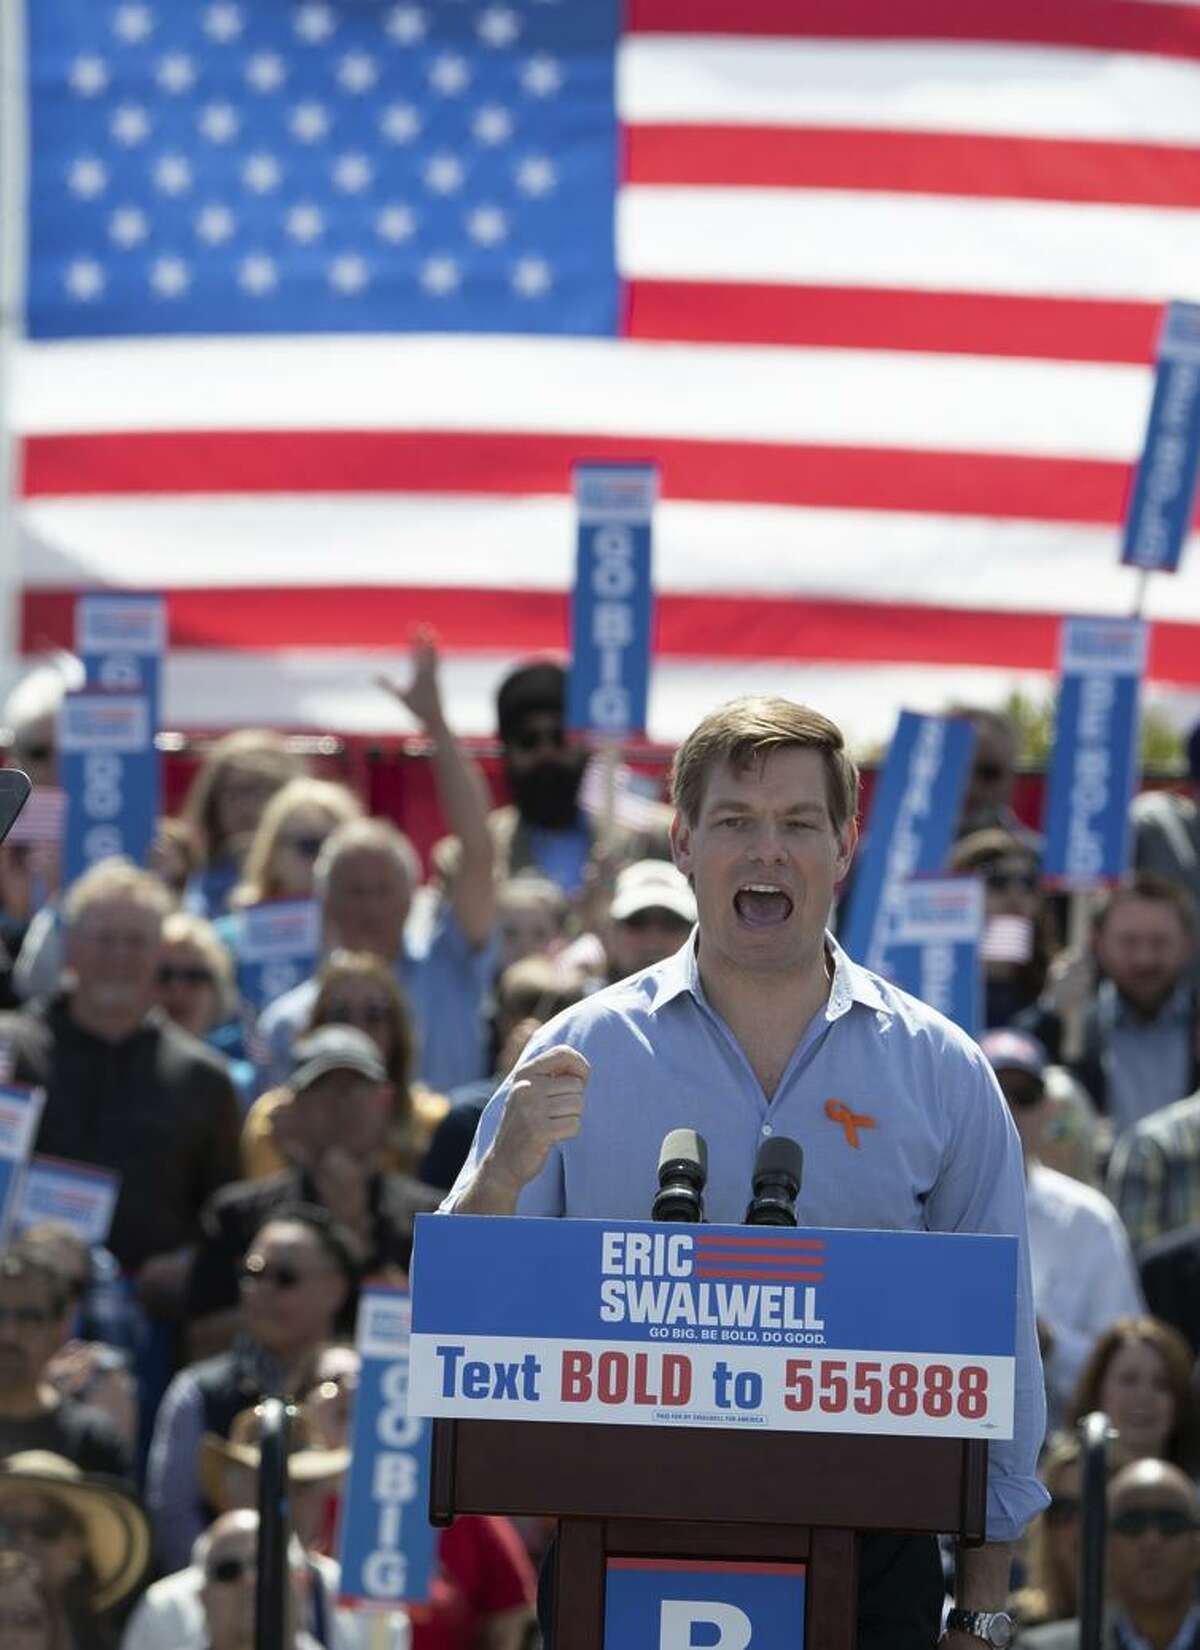 Rep. Eric Swalwell, D-Dublin, who has hopes of becoming president, gives a speech at his alma mater, Dublin High School.